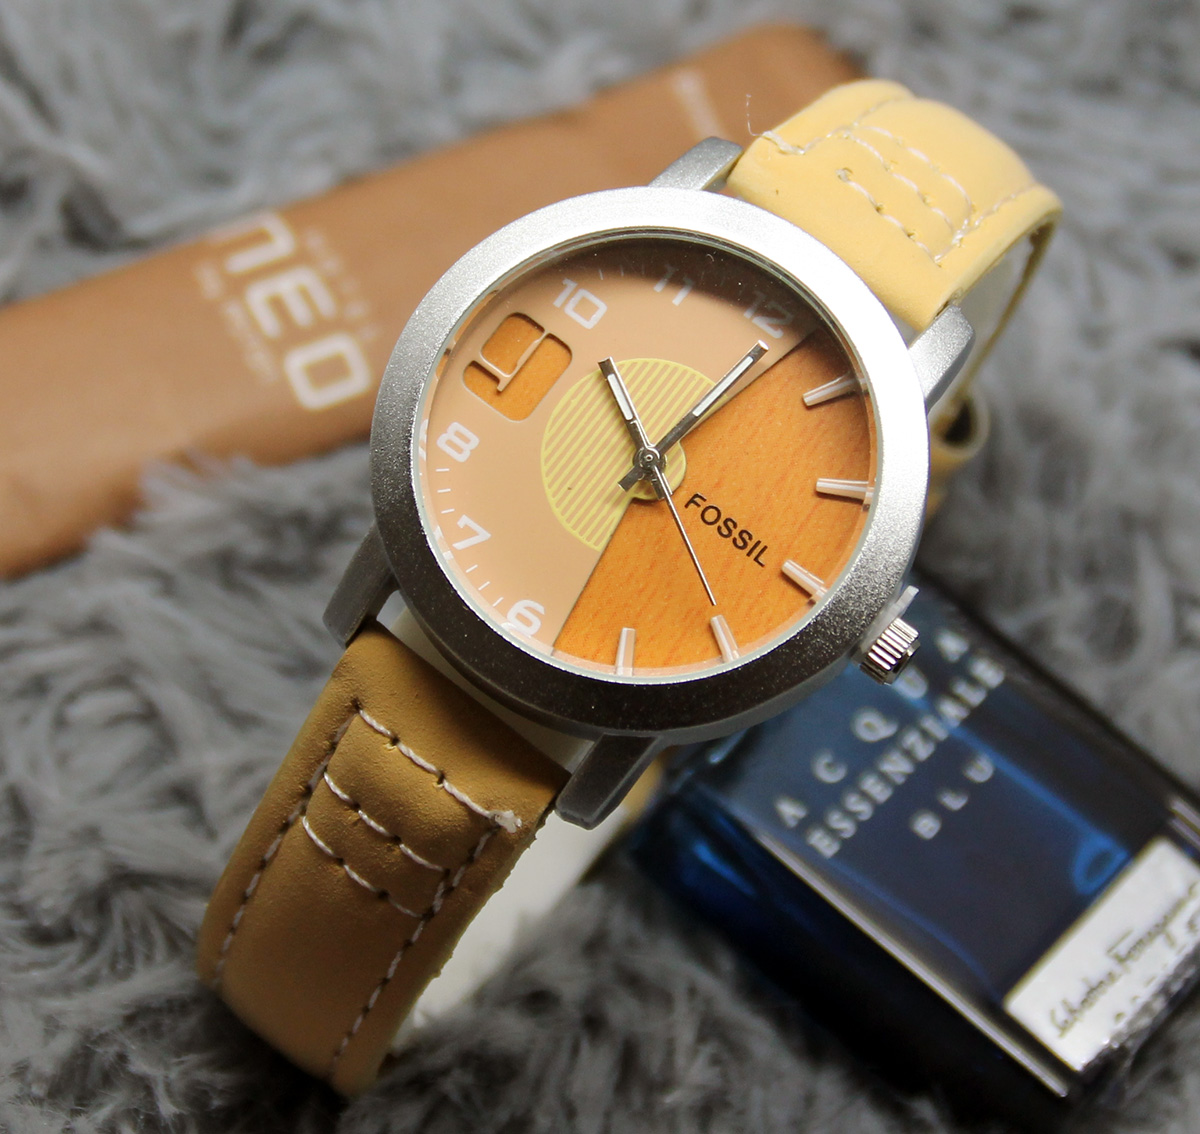 Fossil Es3616 Jam Tangan Wanita Leather Strap Brown Best Buy Indonesia Original Es4051 Tailor Indigo Dyed Jual Wood Mocca 01 Ghafur Arloji Tokopedia